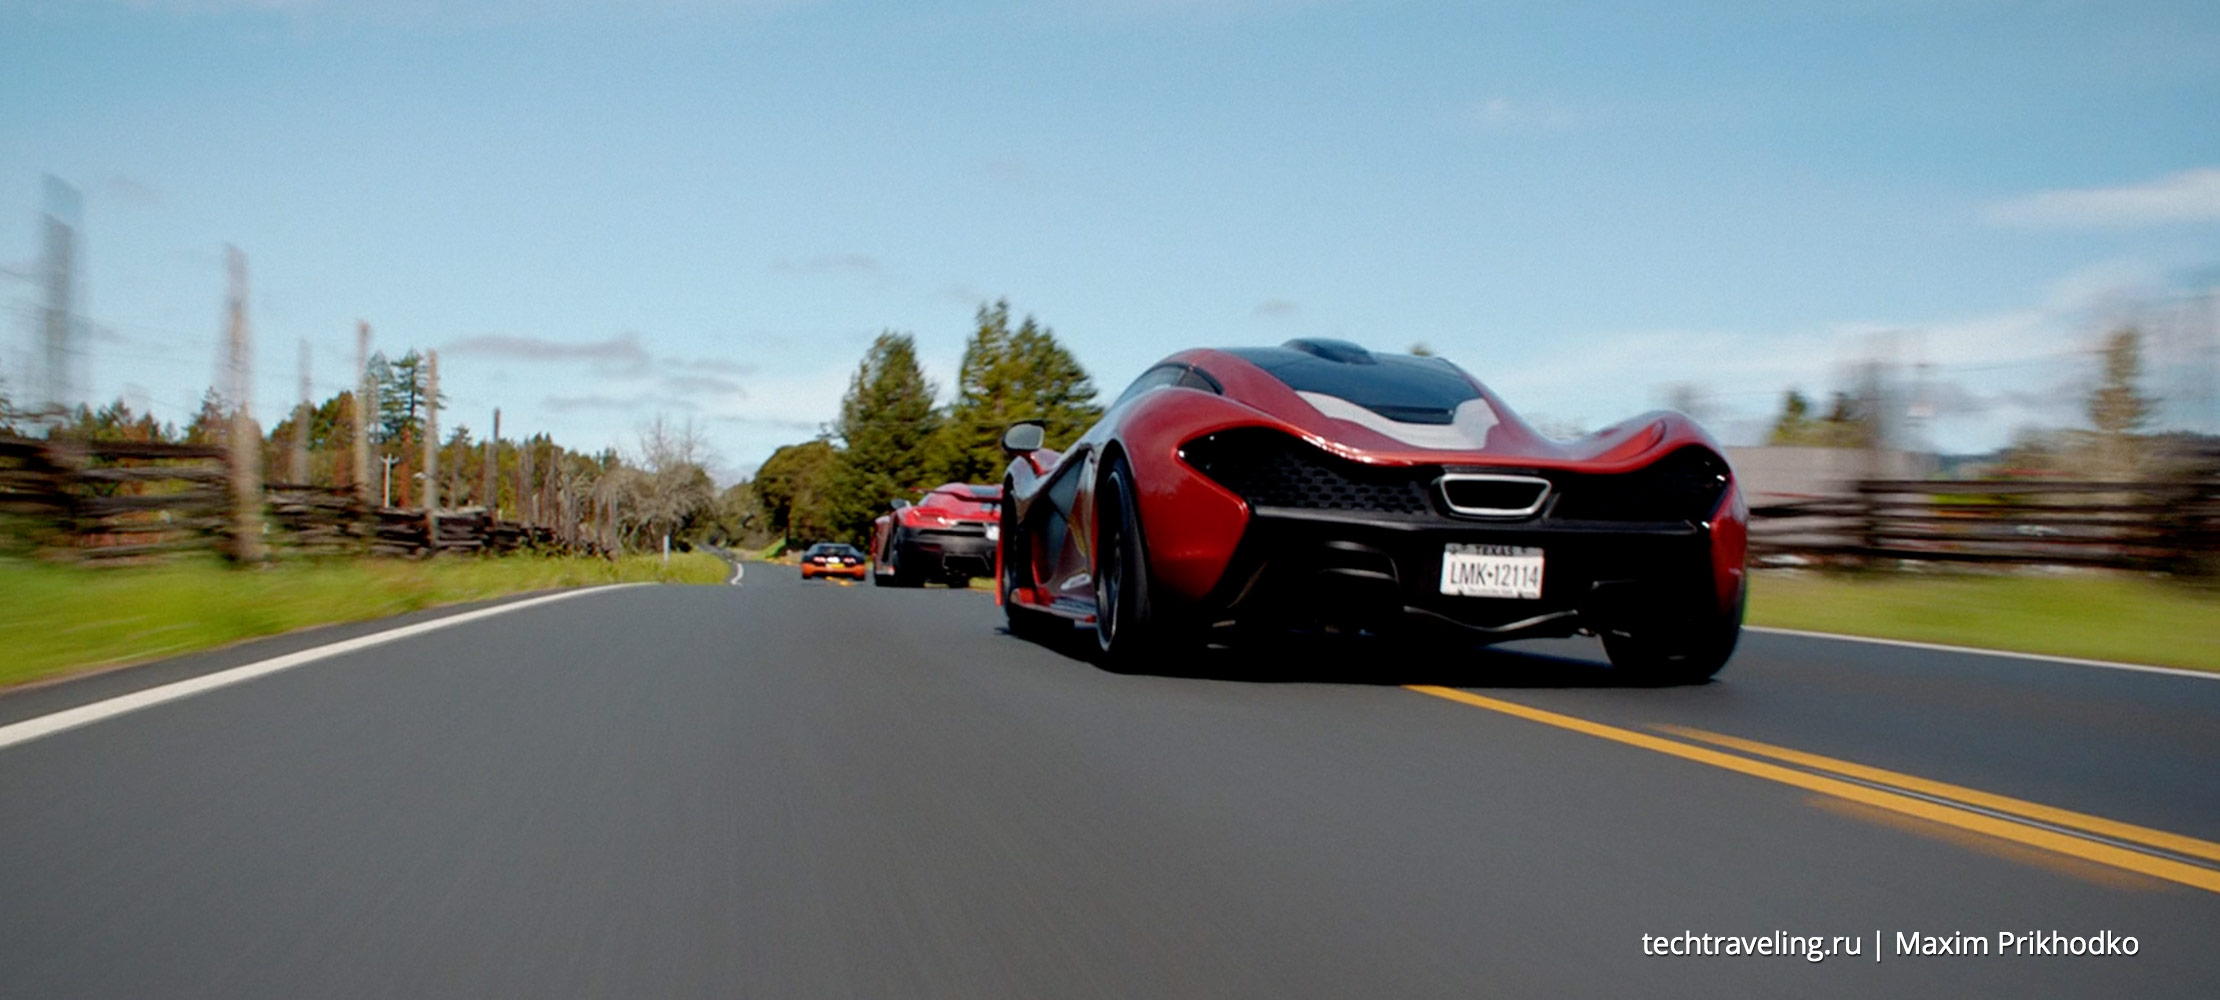 McLaren P1 Need For Speed